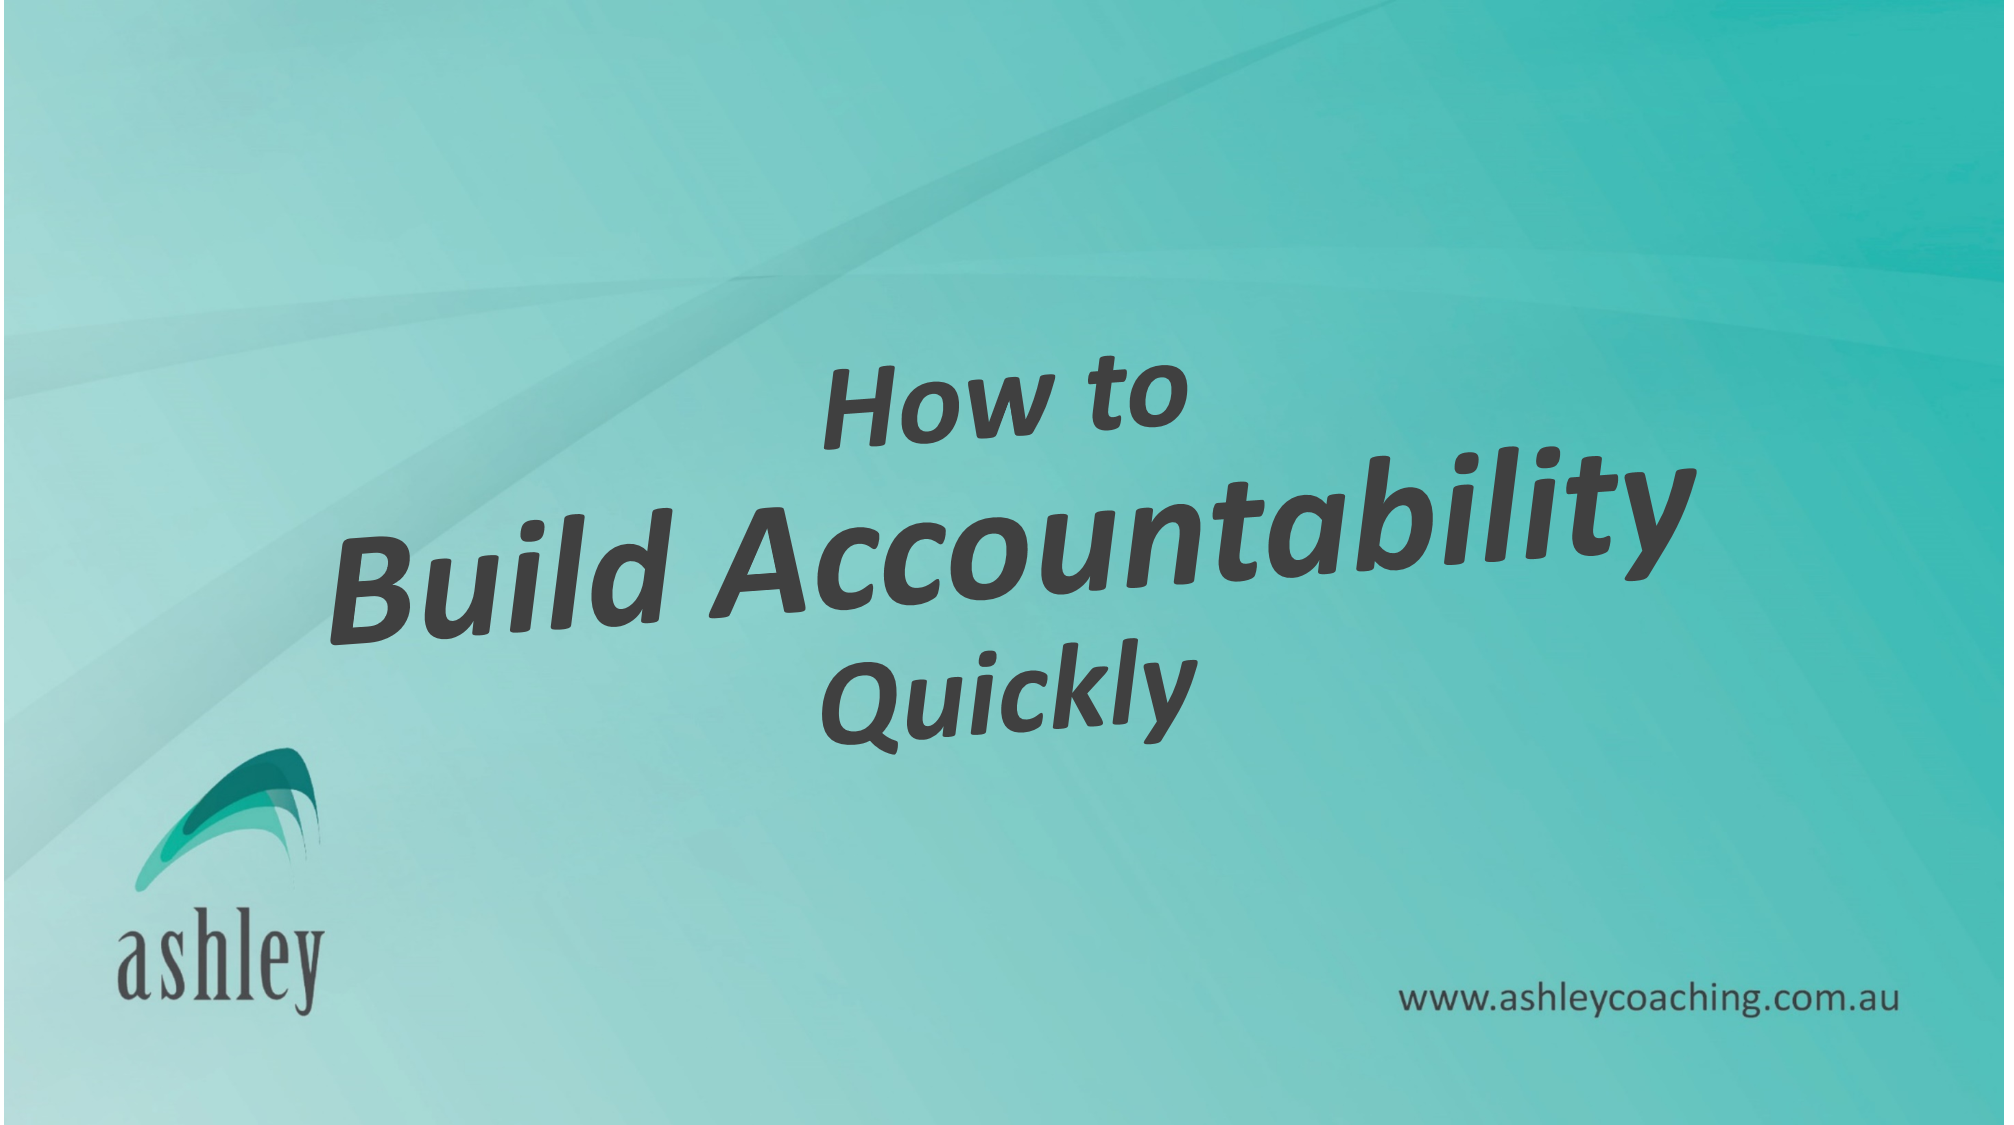 How To Build Accountability Quickly